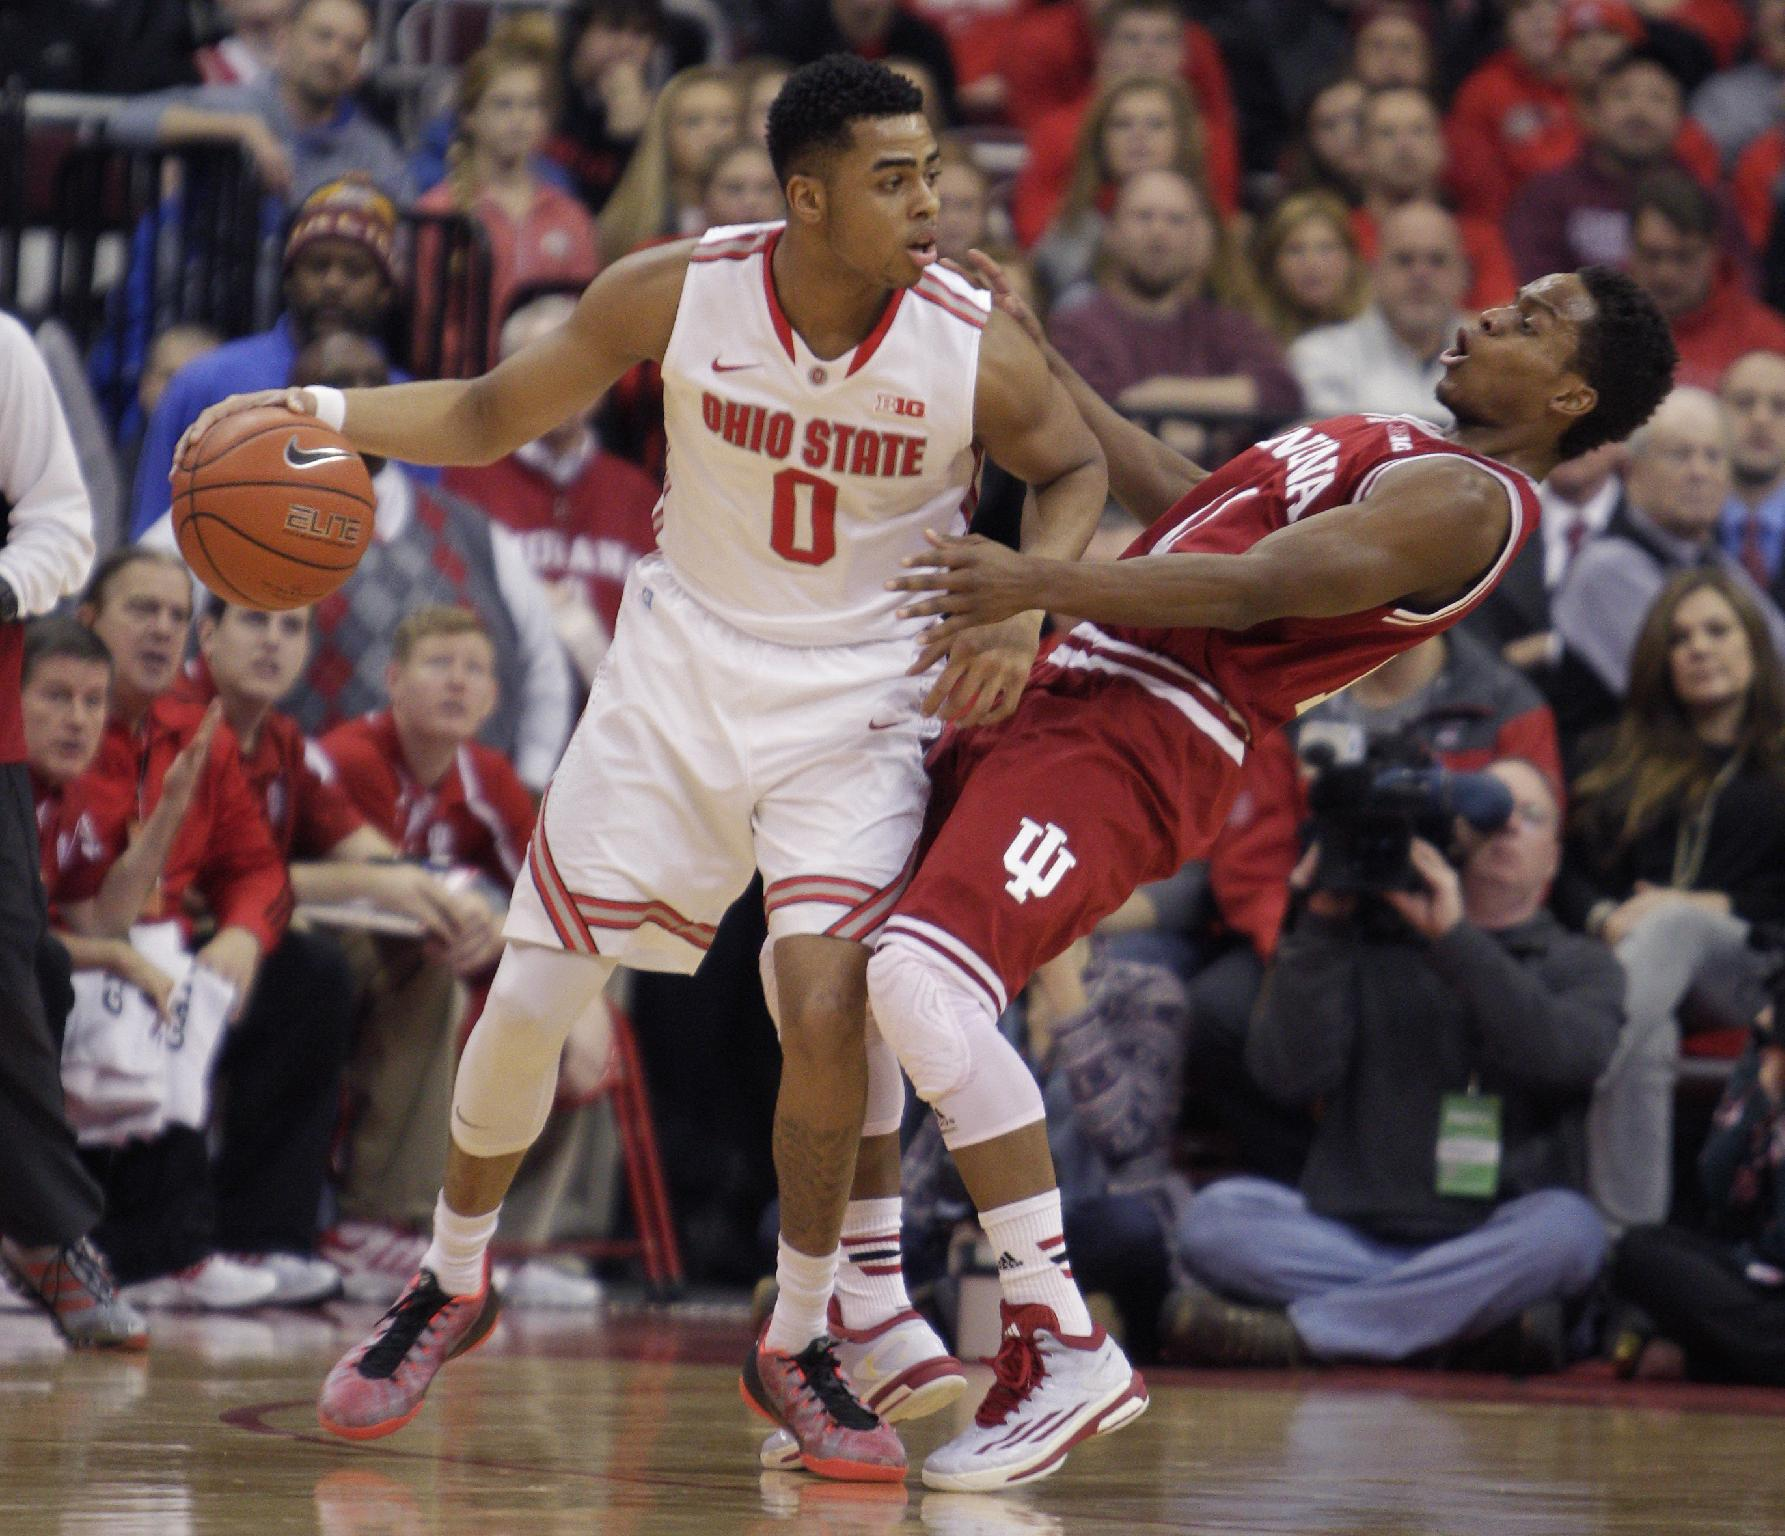 Russell helps Ohio State upset No. 23 Indiana 82-70